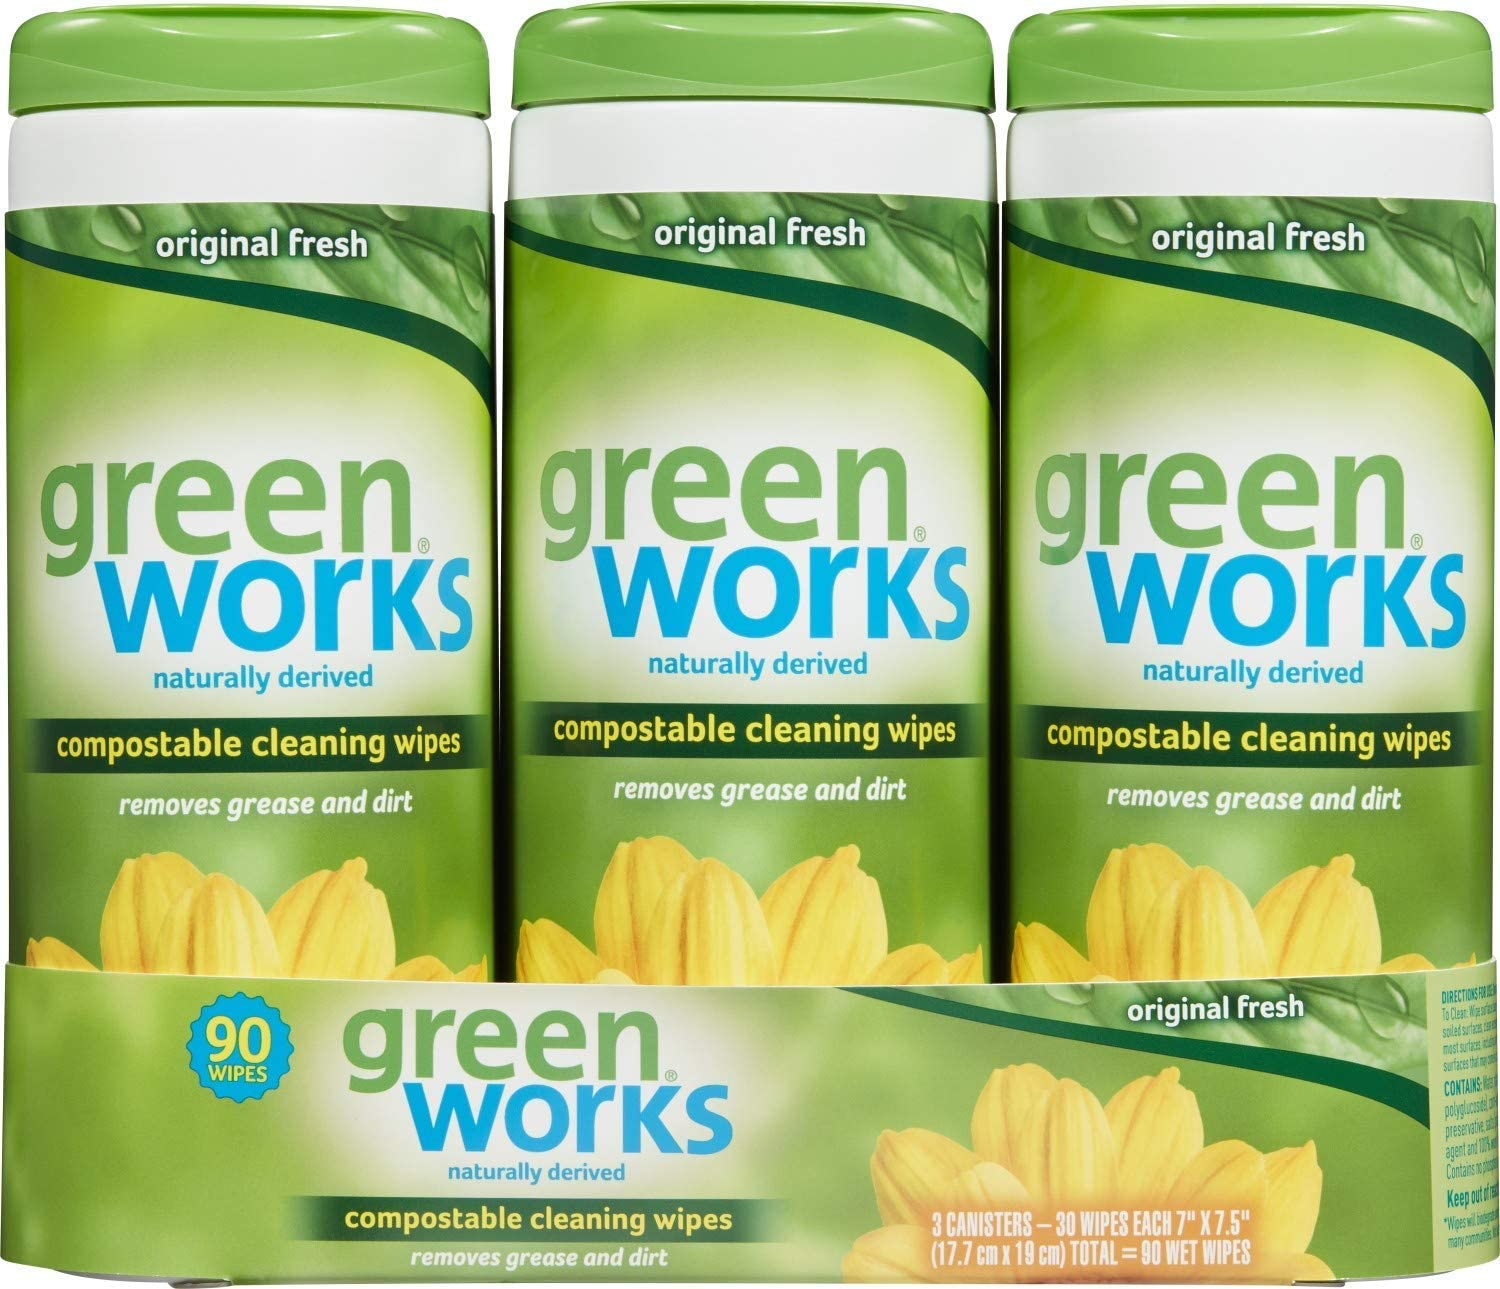 Green Works Compostable Cleaning Wipes, Biodegradable Cleaning Wipes - Original Fresh, 30 Count - 3 Pack